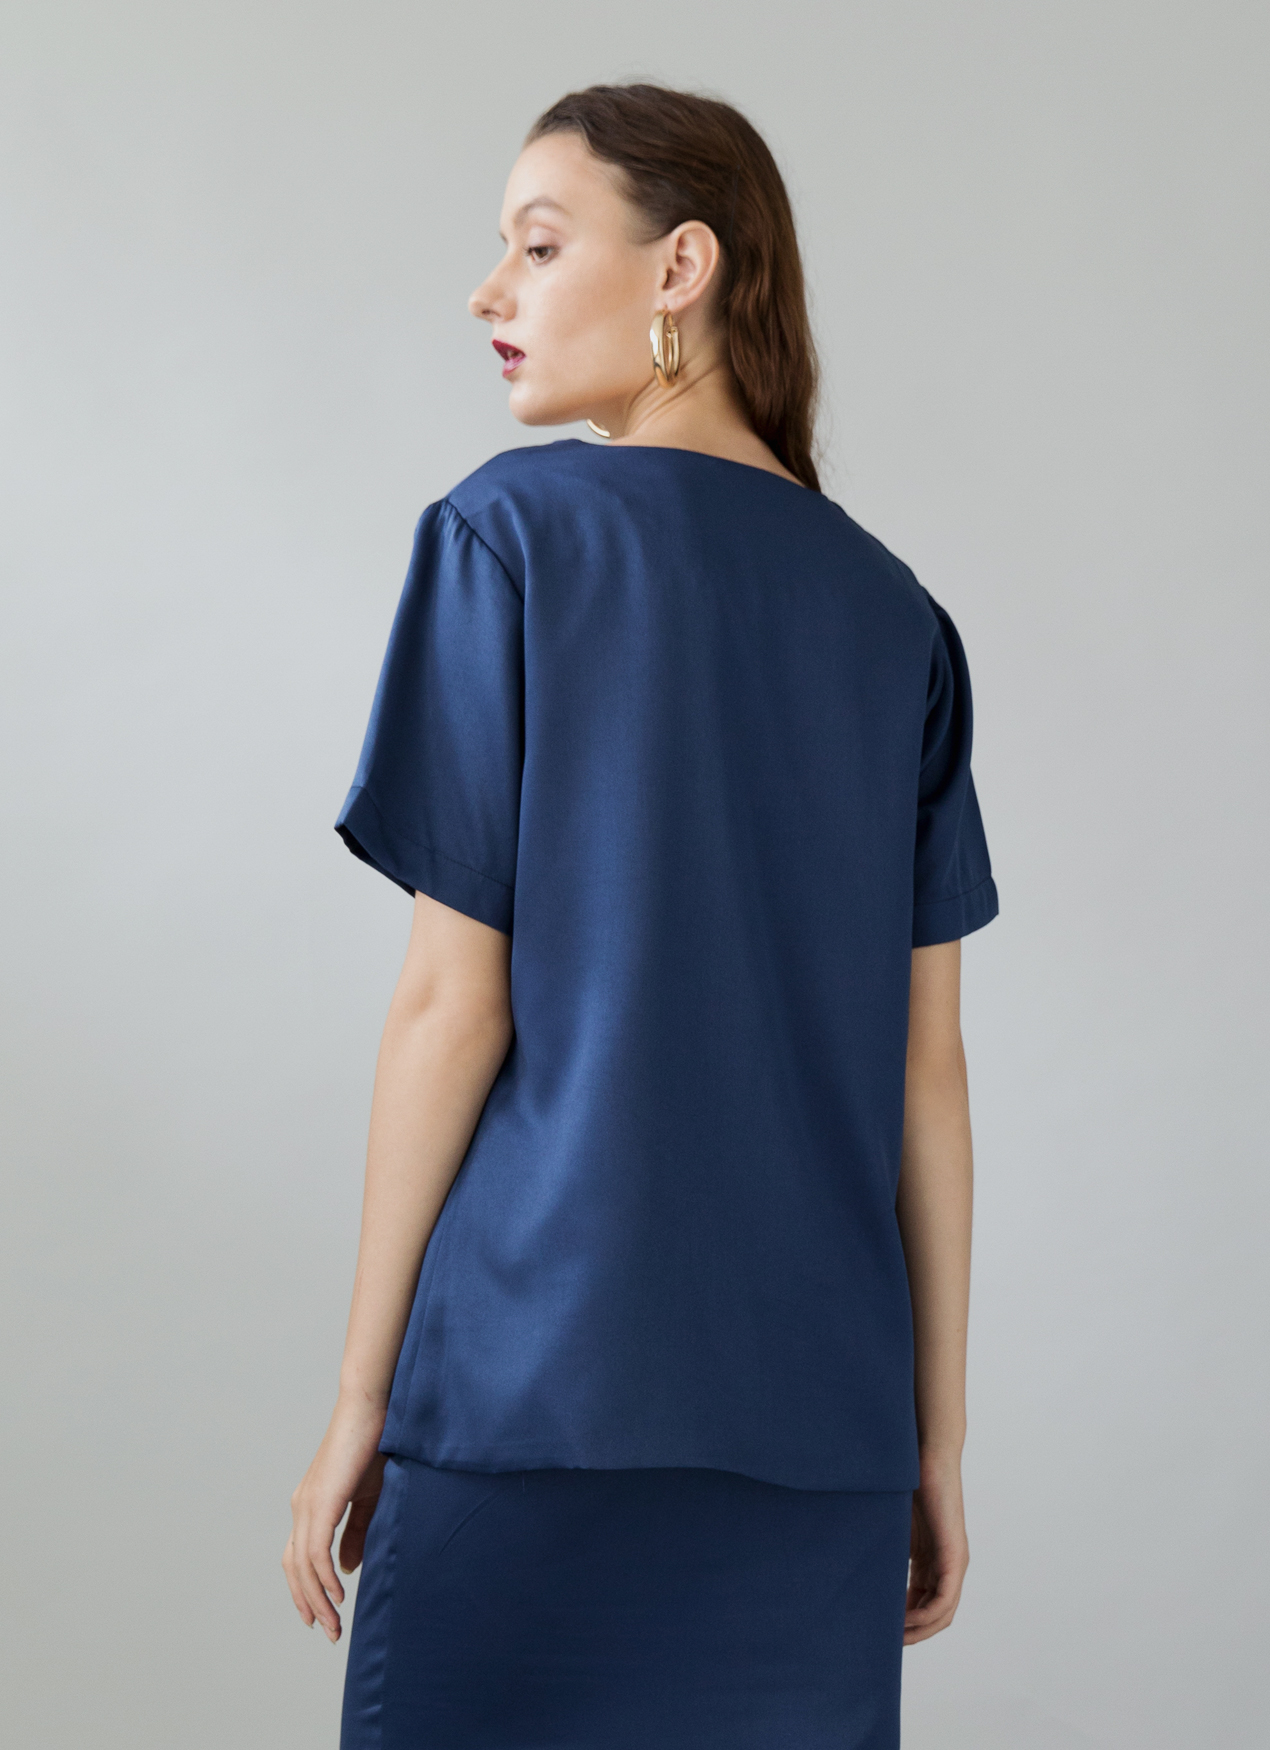 ATS THE LABEL Reggie Top - Navy